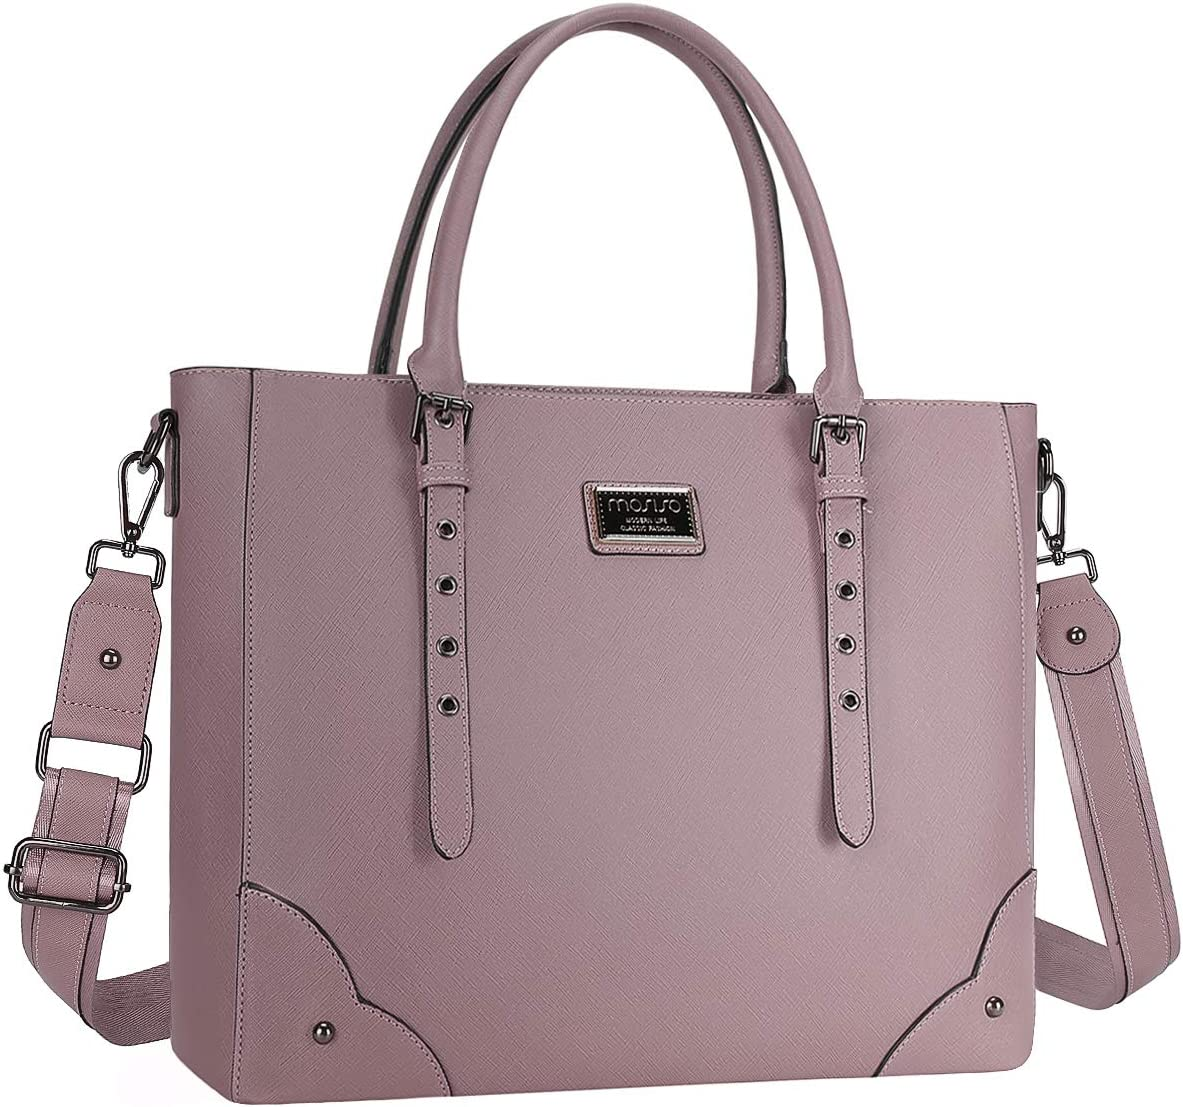 MOSISO 15.6 inch Women Laptop Tote Bag with Adjustable Handle&Rivets, Purple